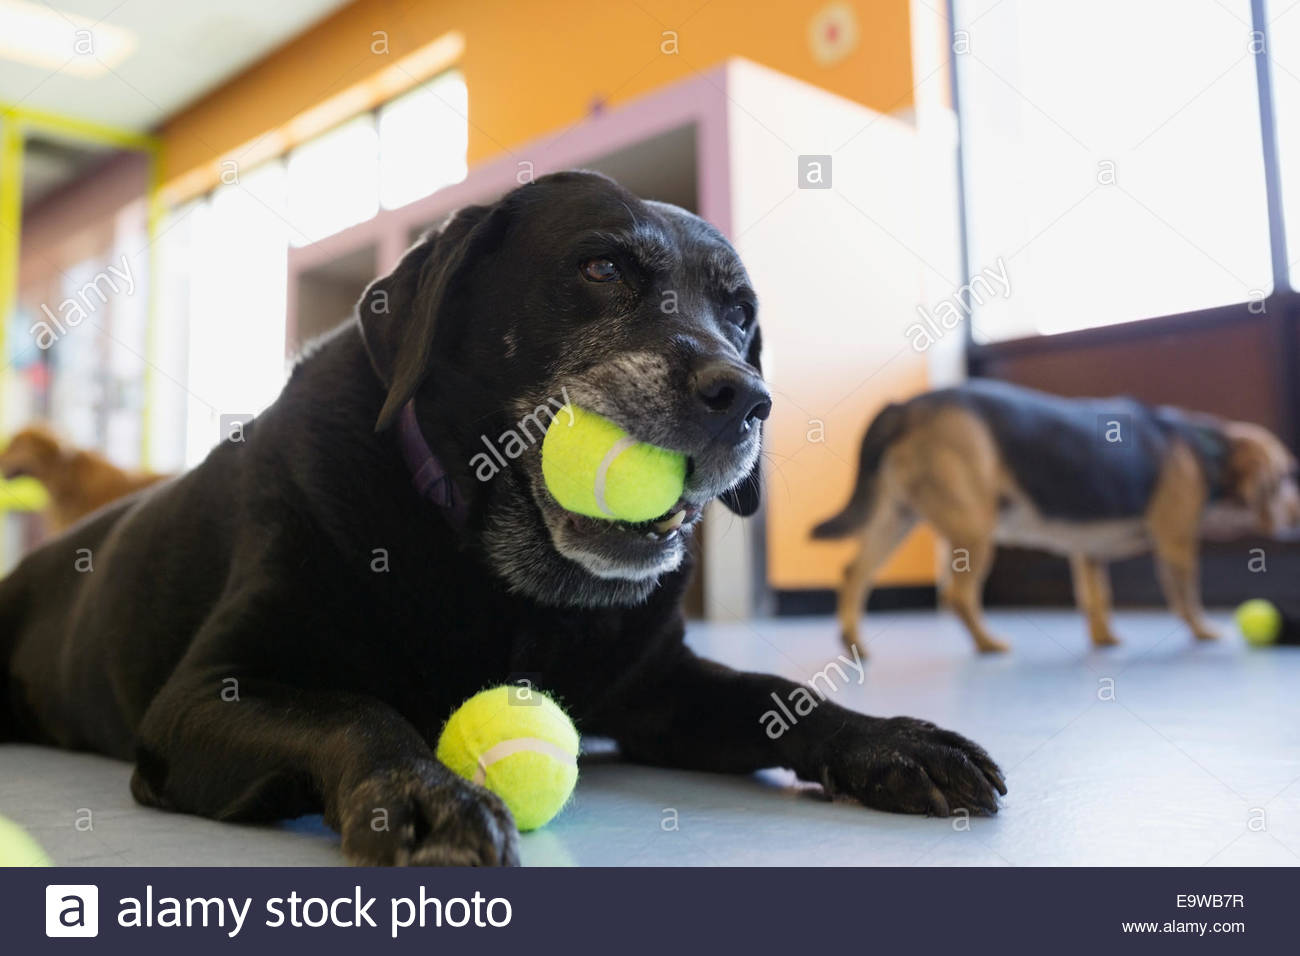 Labrador noir de mâcher de la balle de tennis Photo Stock